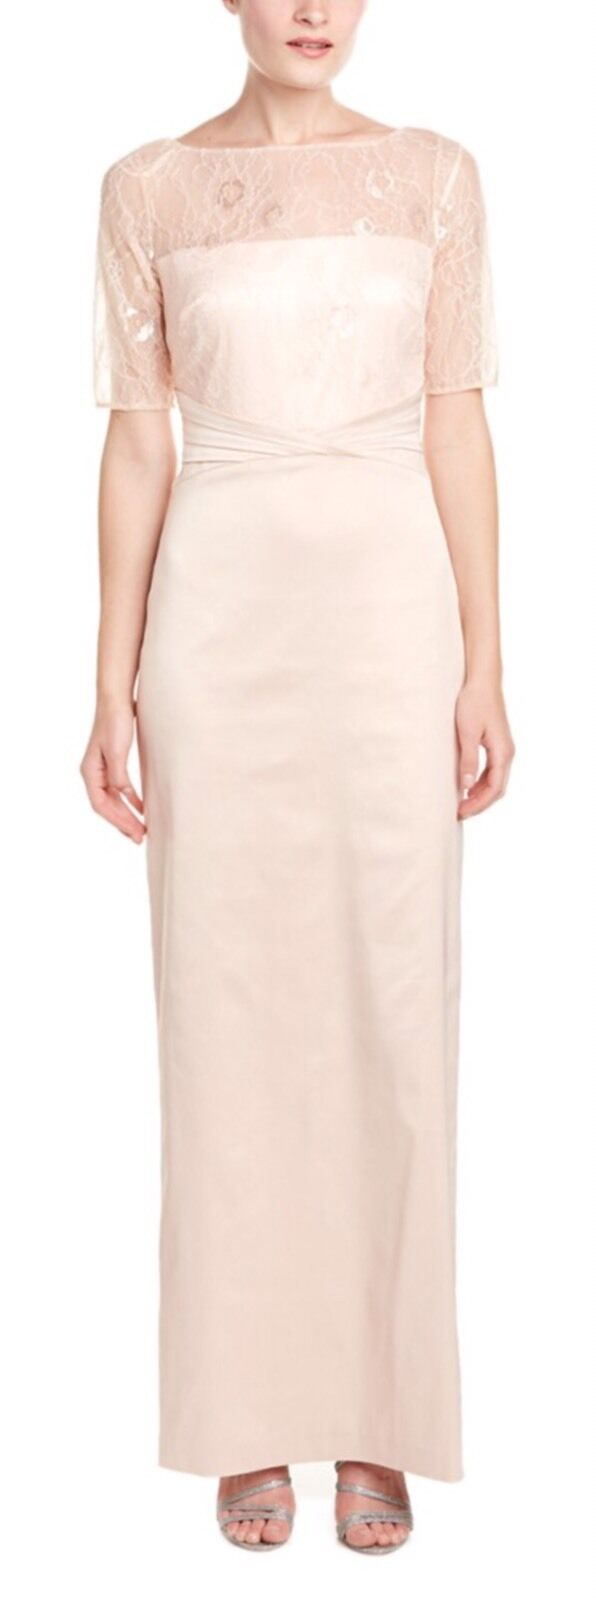 Kay Unger Womens Gown 12 Pink | eBay